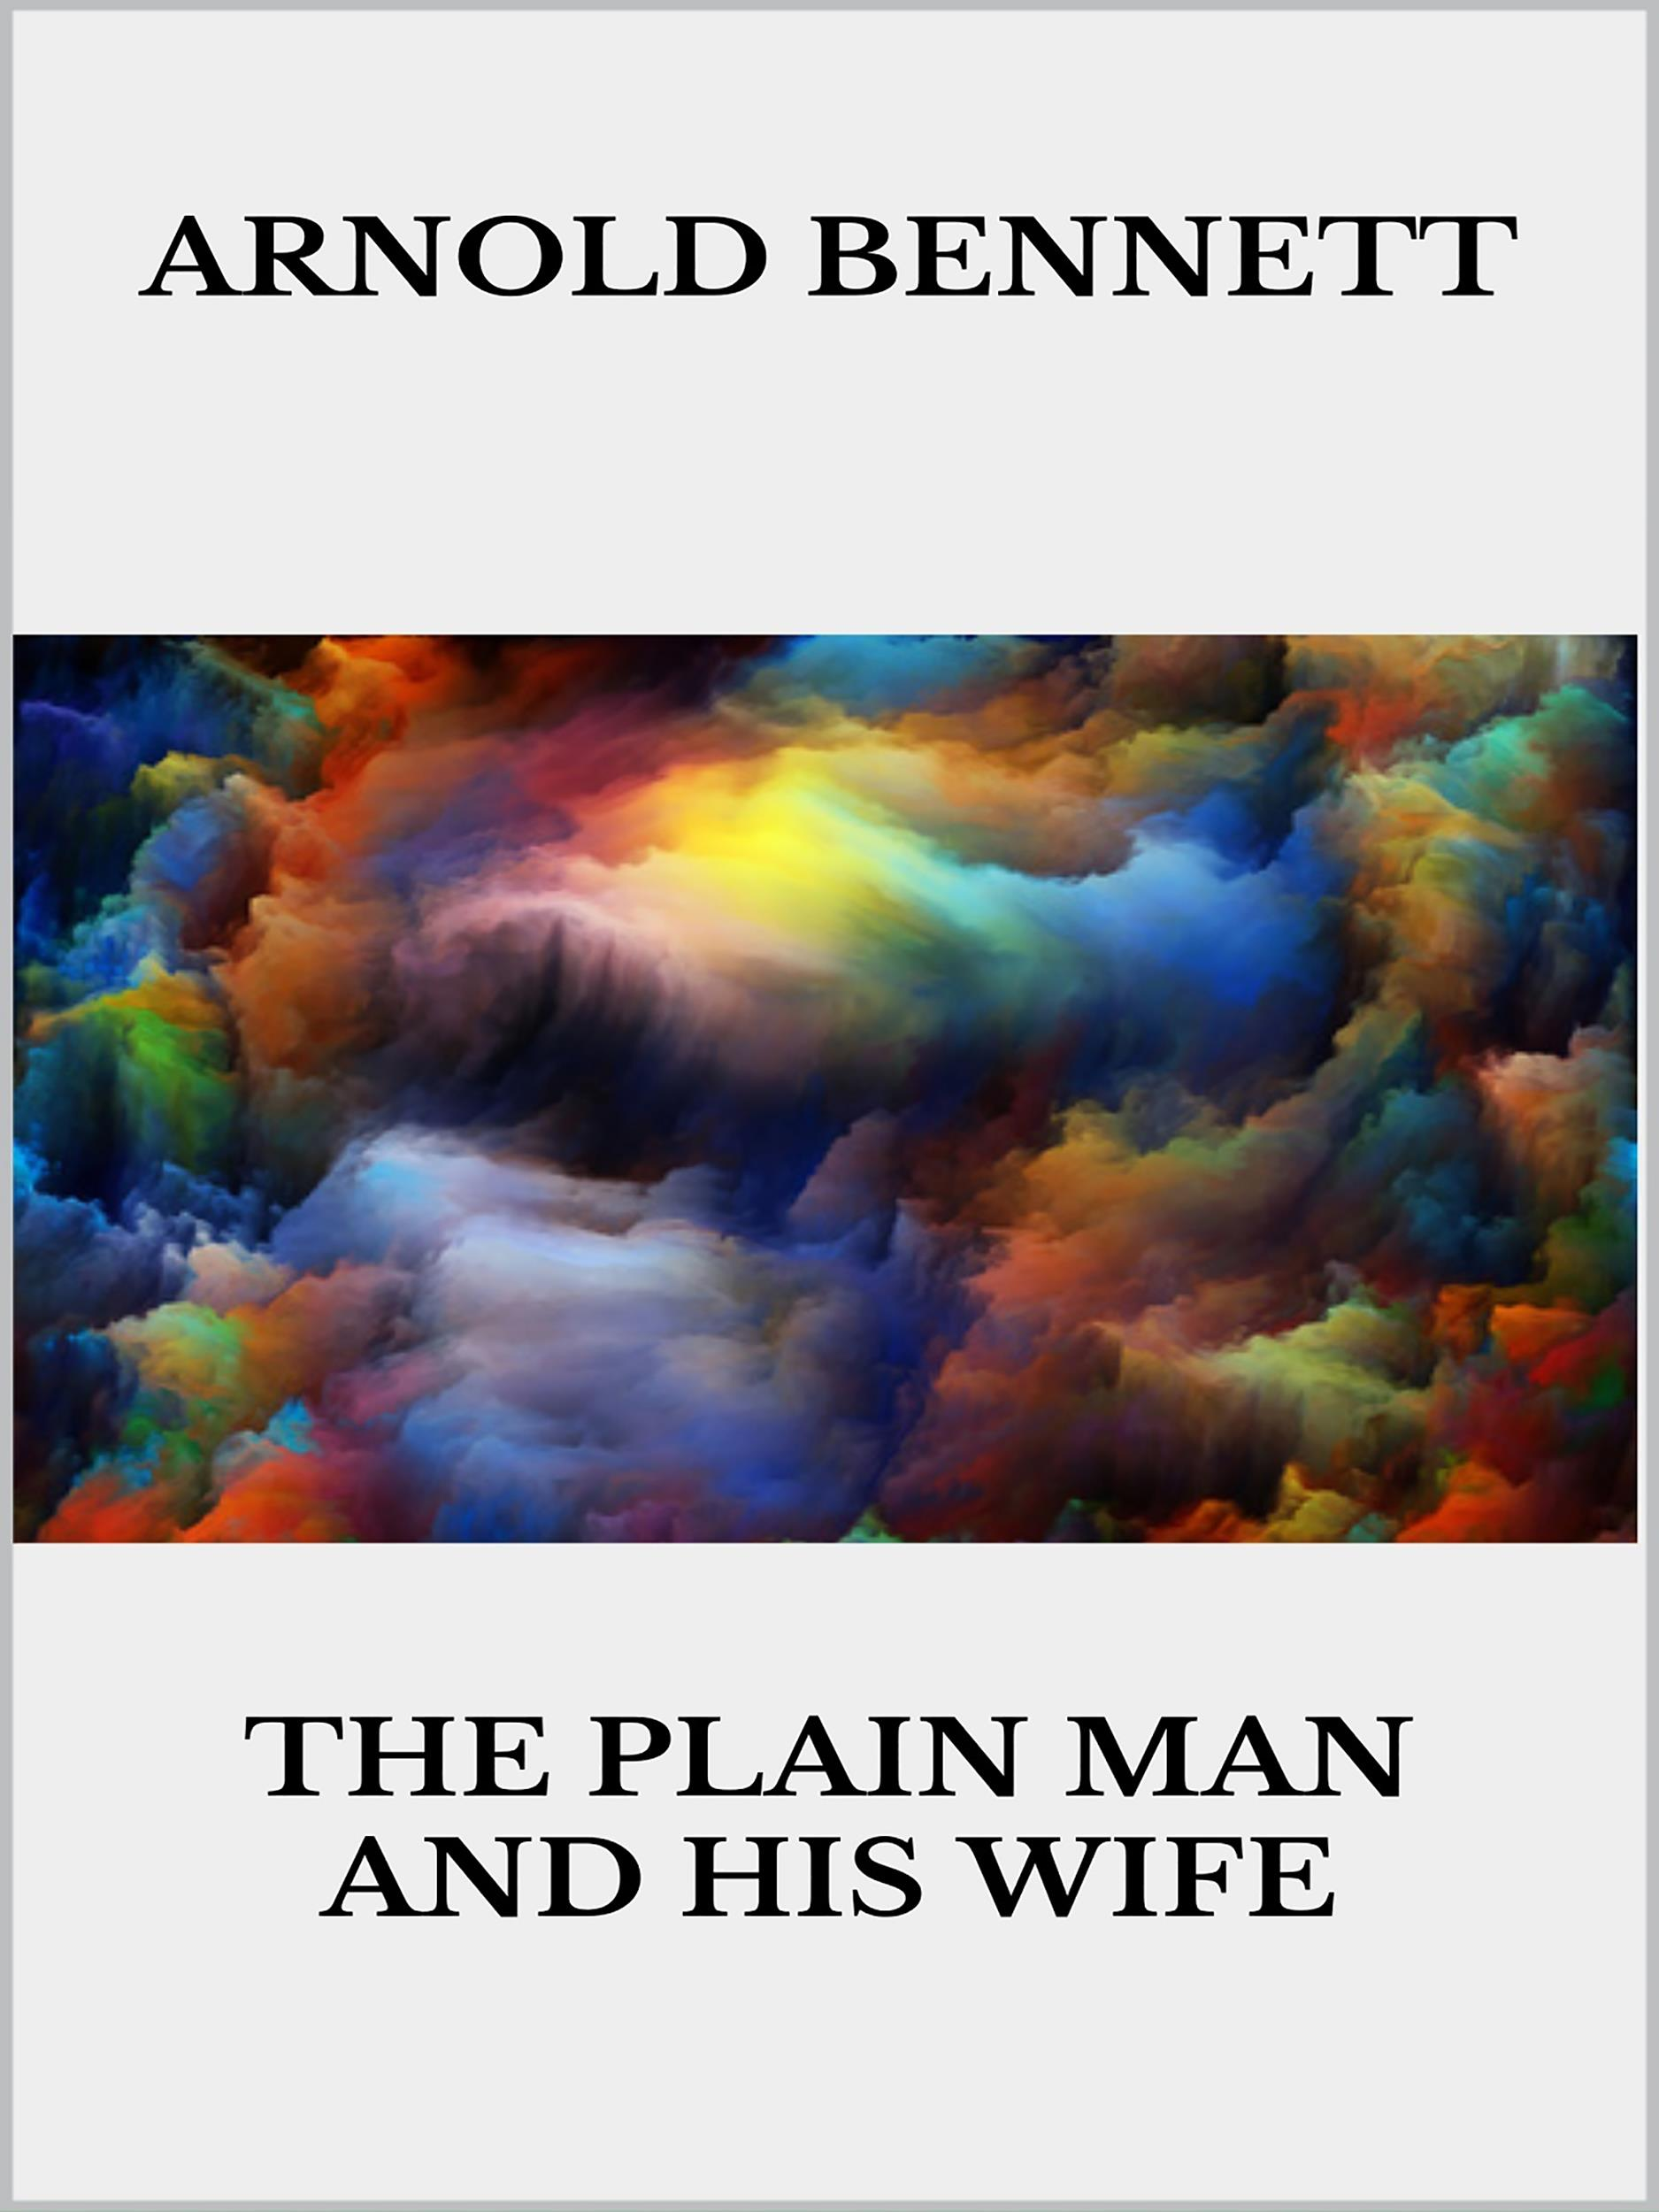 The Plain Man and His Wife